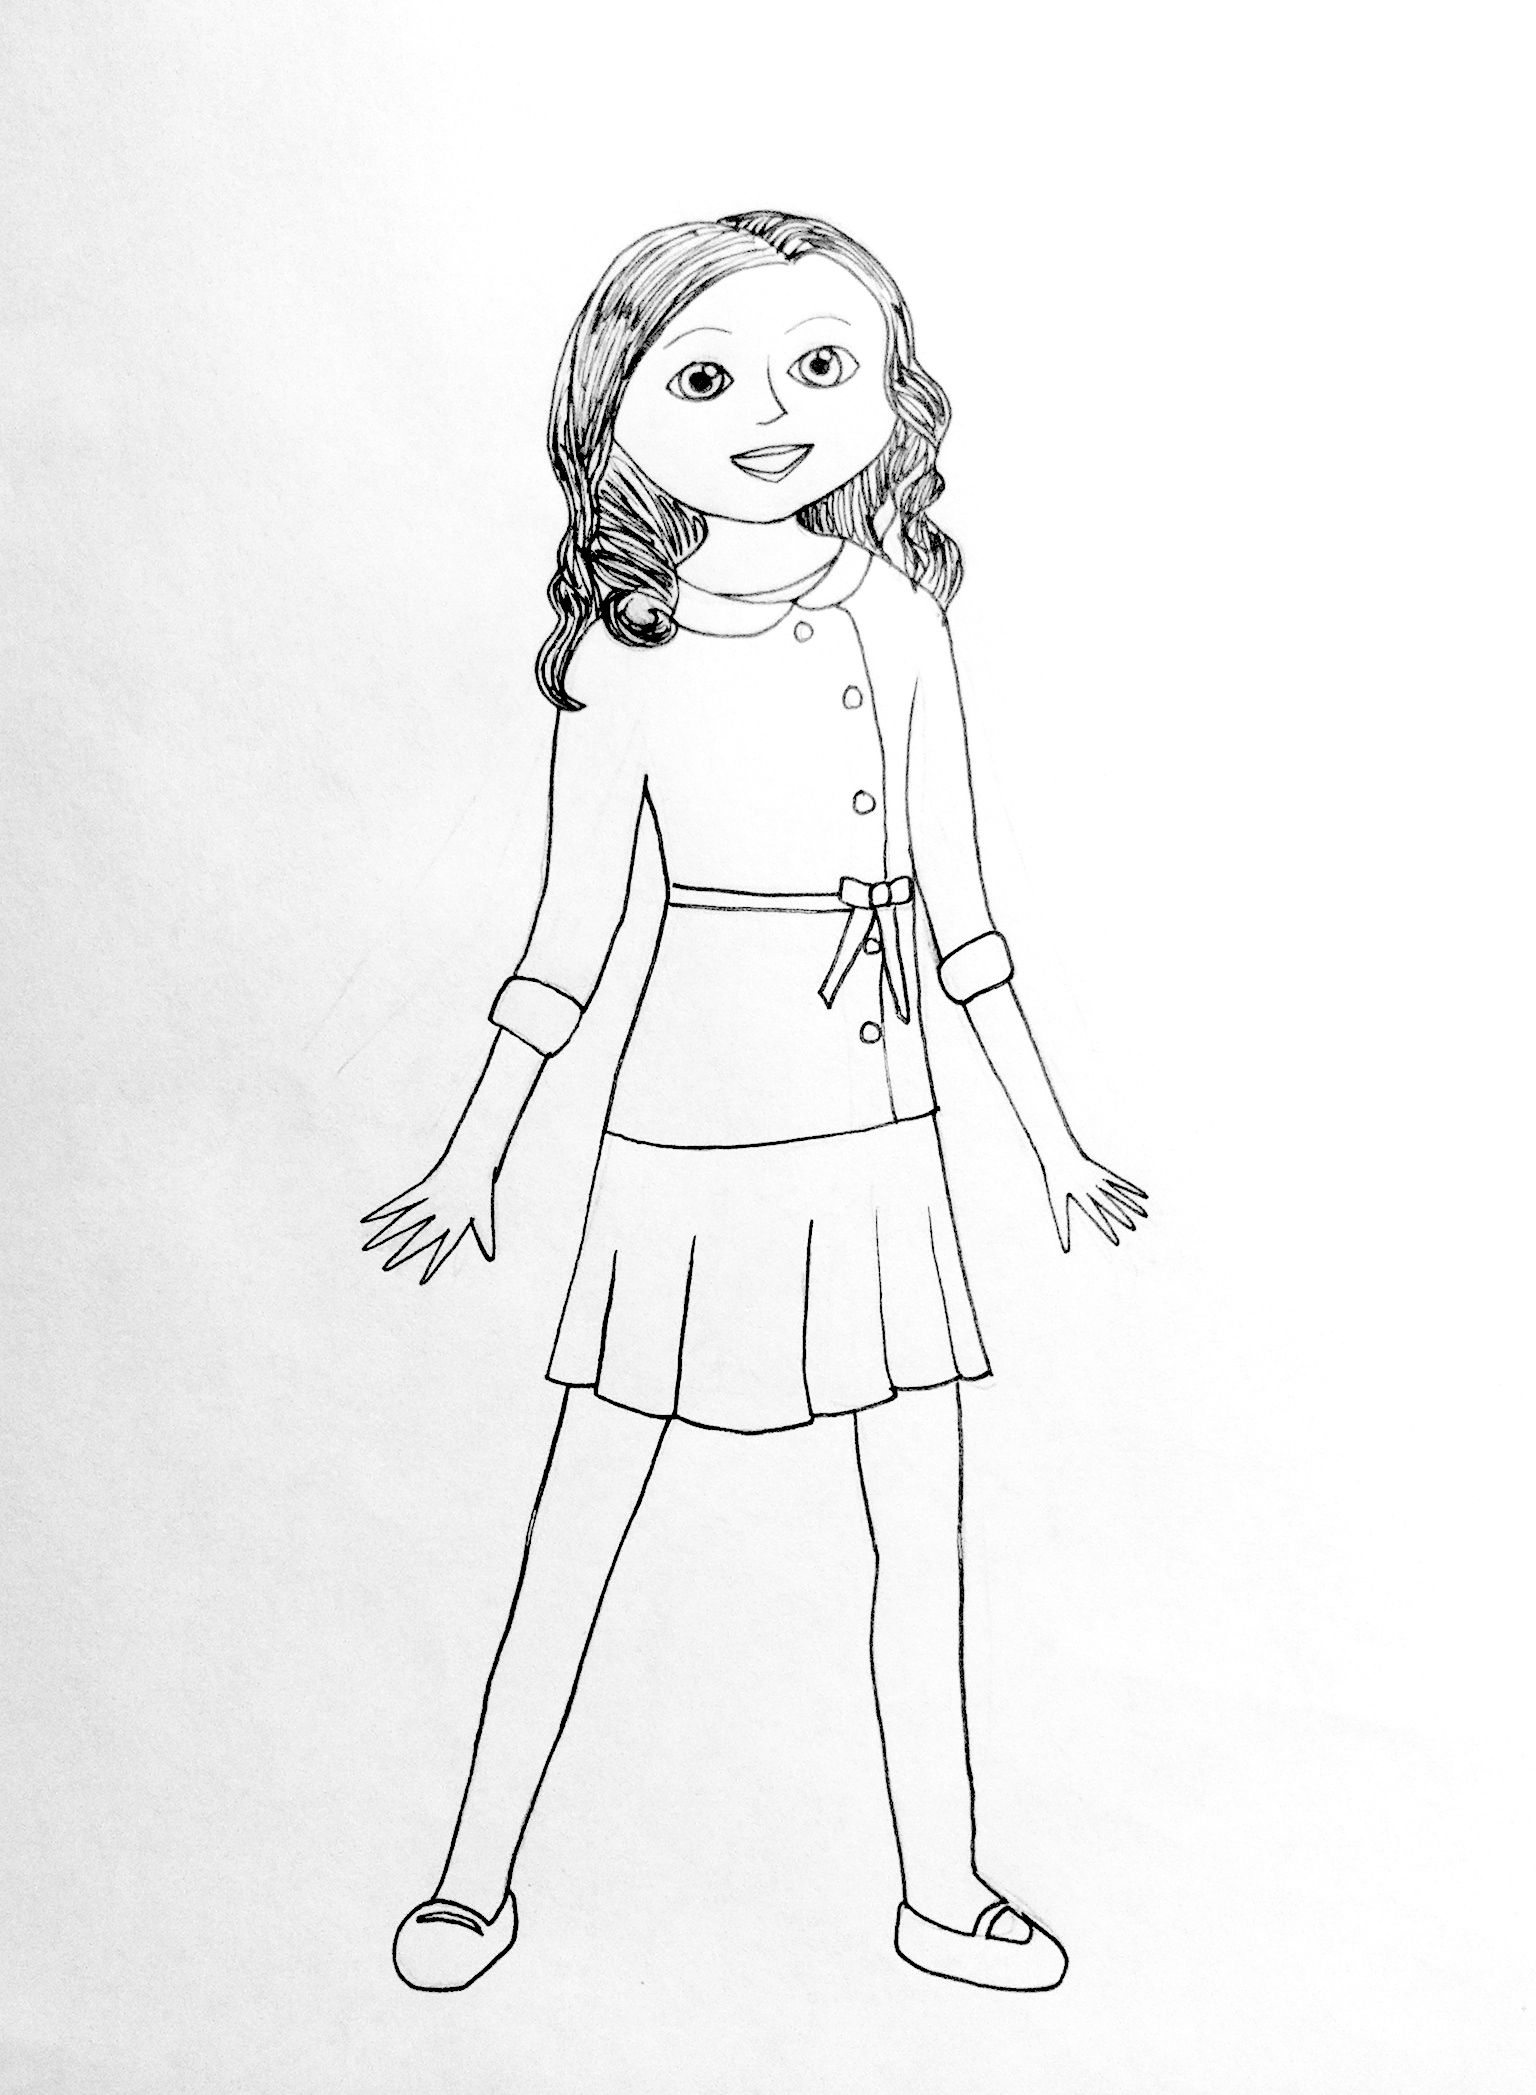 american girl doll coloring pages to print american girl doll coloring pages to print print to girl doll coloring american pages